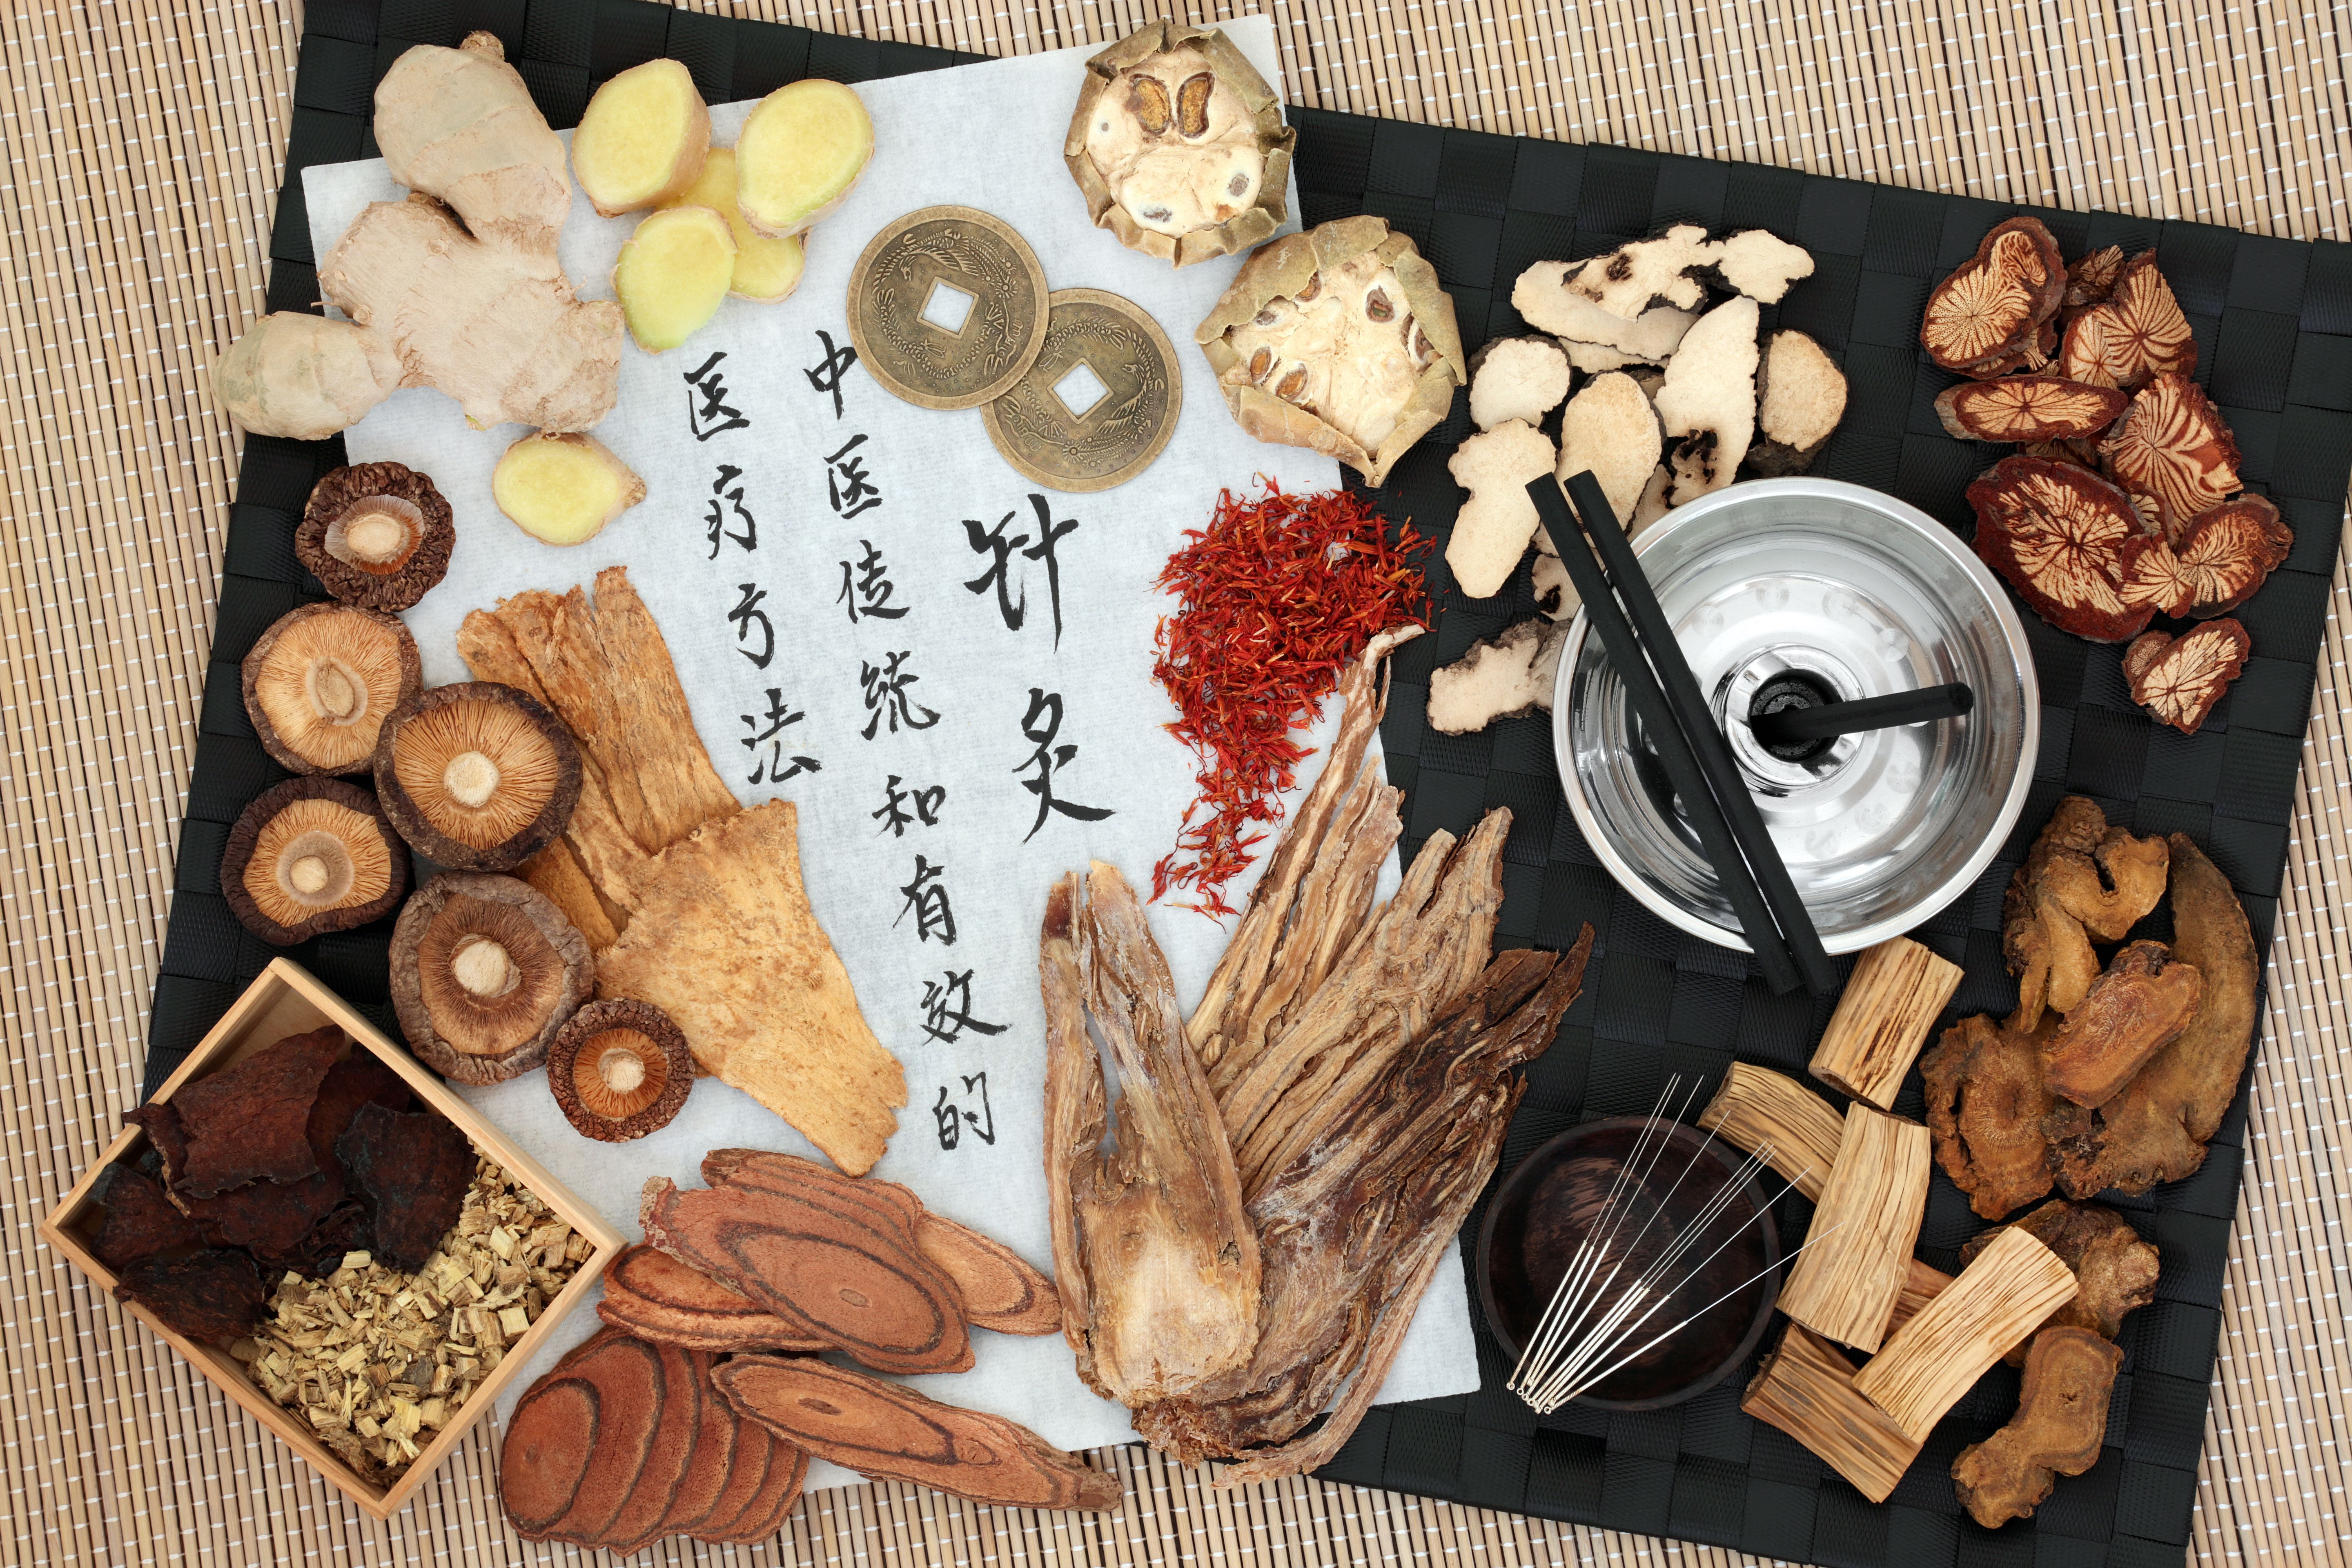 As the characters on the paper read, acupuncture and traditional Chinese medicine offer effective treatment methods.(marilyn barbone/Shutterstock)